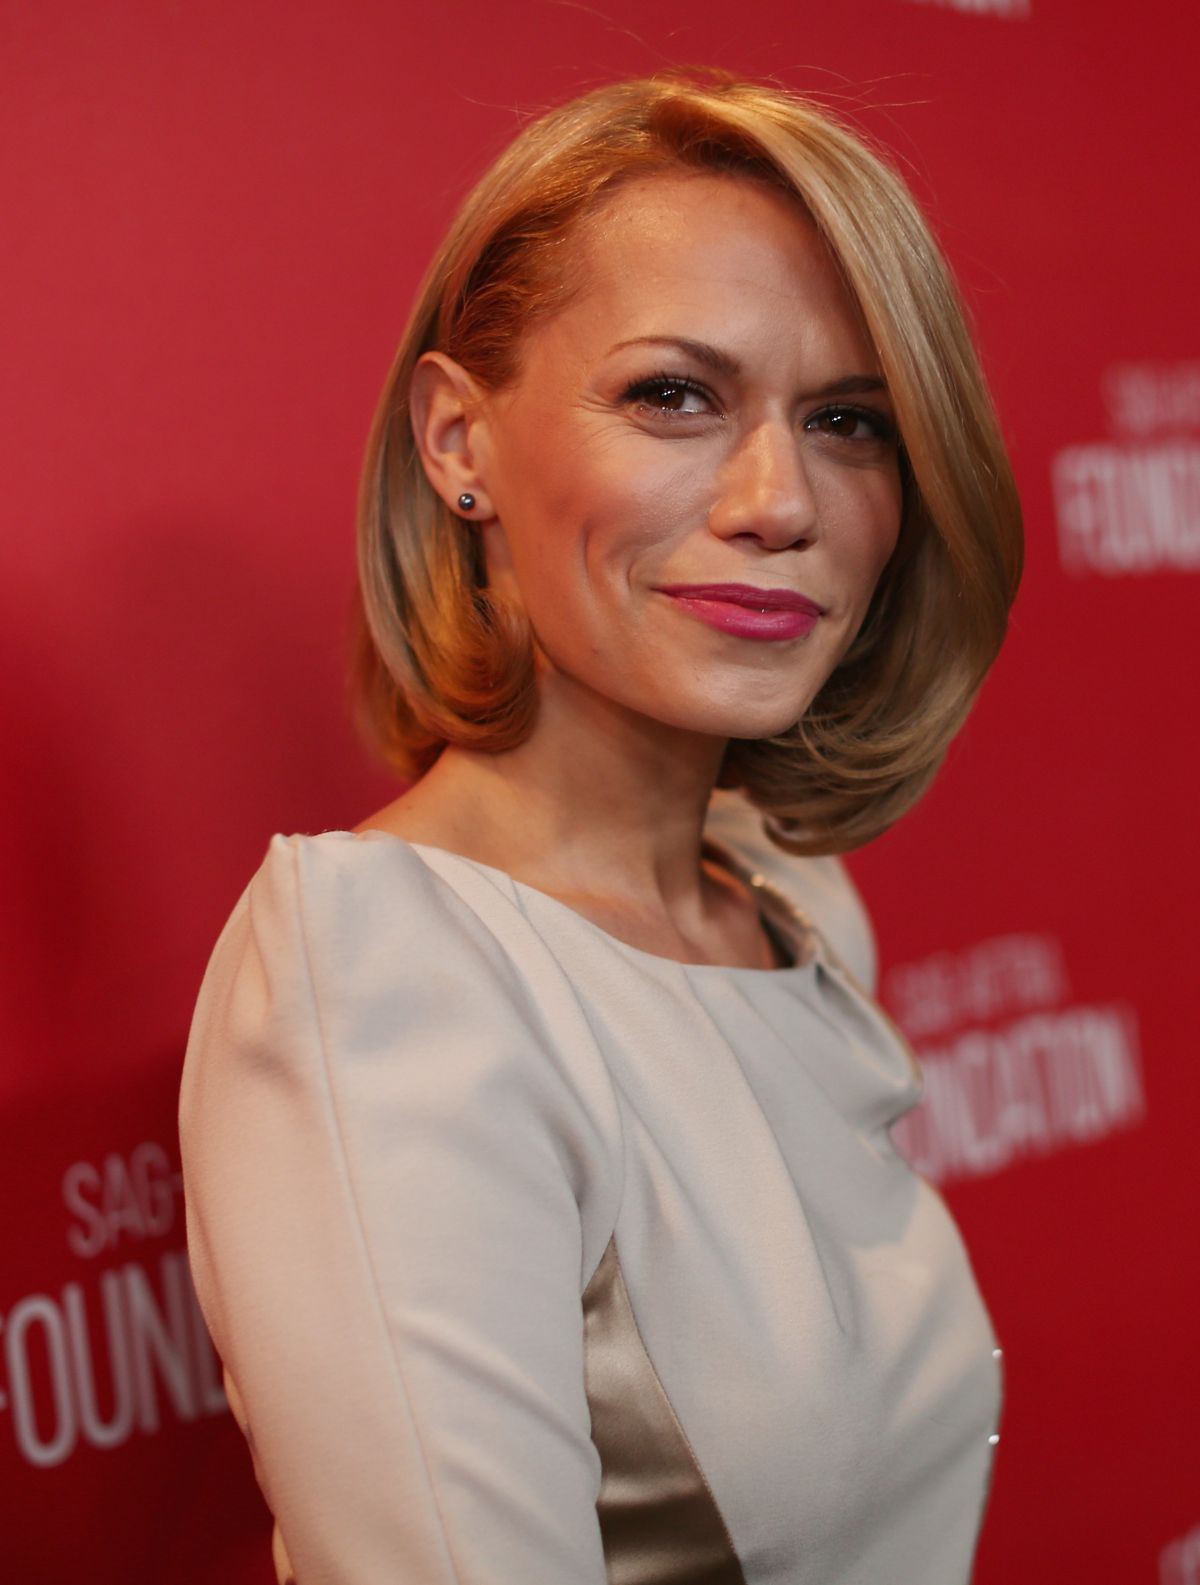 bethany-joy-lenz-at-sag-foundation-30th-anniversary-celebration-in-beverly-hills-11-05-2015_3